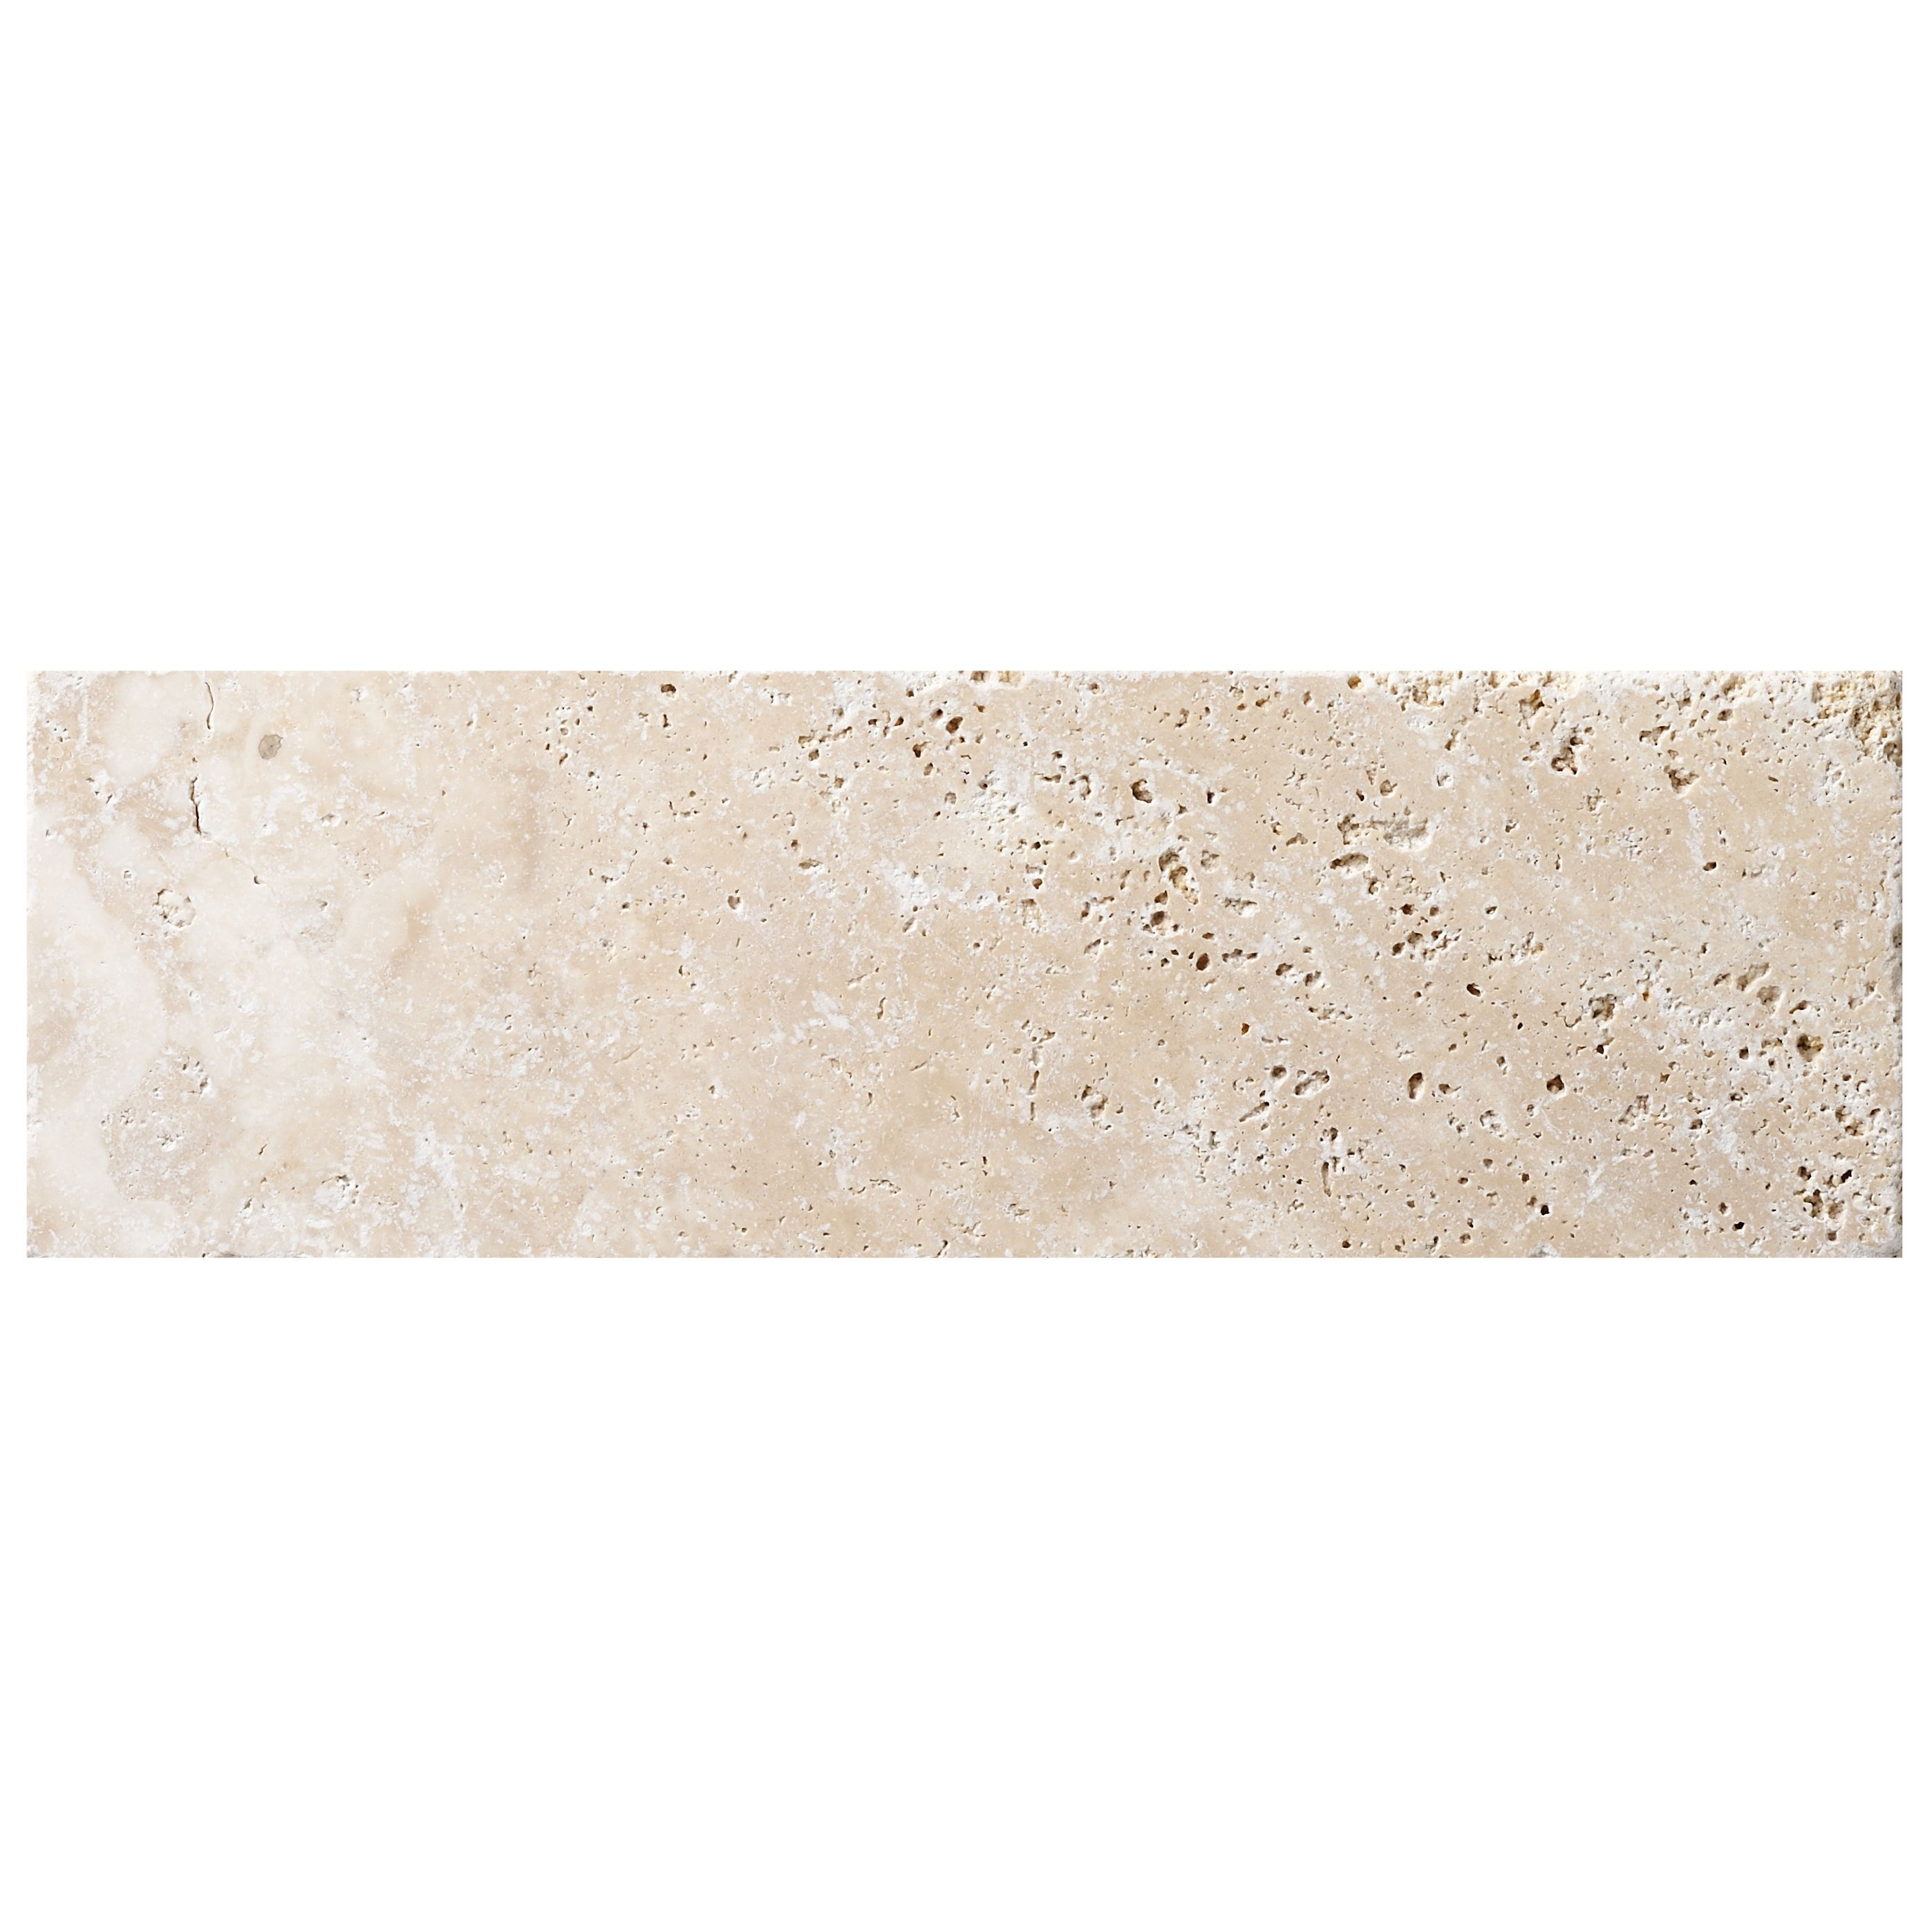 Tumbled Light Beige Stone Effect Travertine Wall Tile, Pack Of 15, (l)305mm (w)100mm